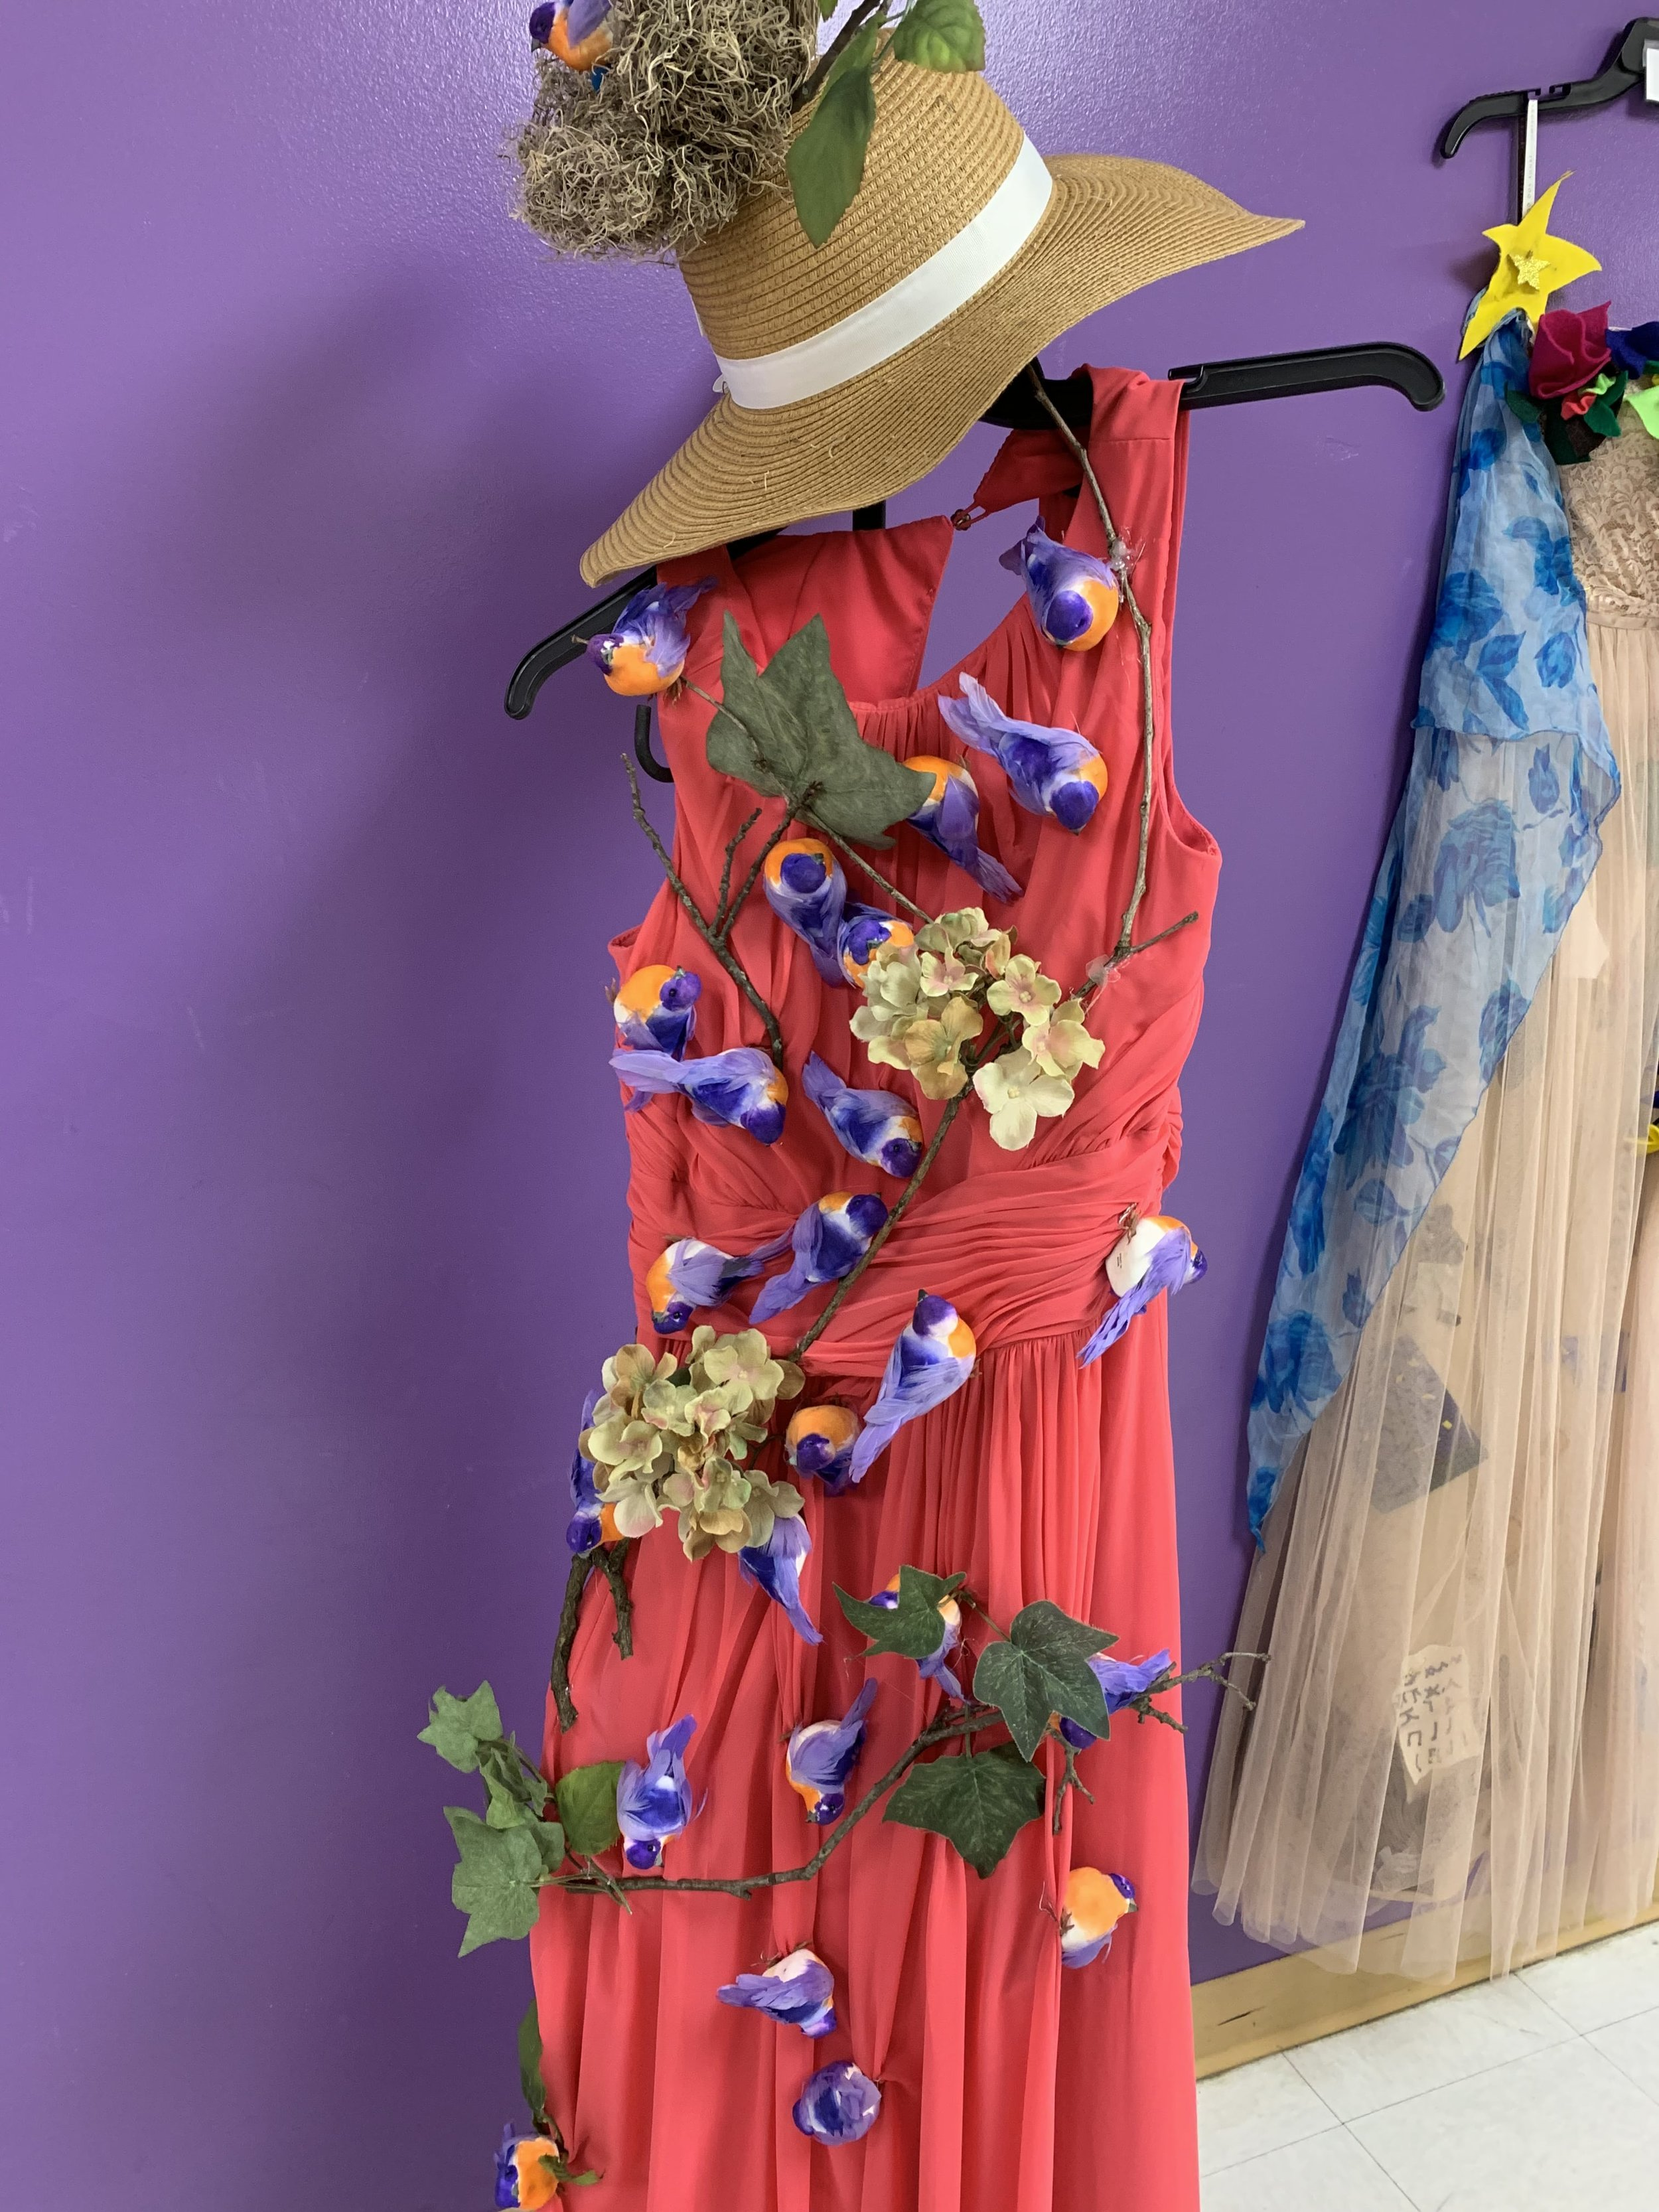 Elementary schoolers decorate donated dresses as part of art history unit